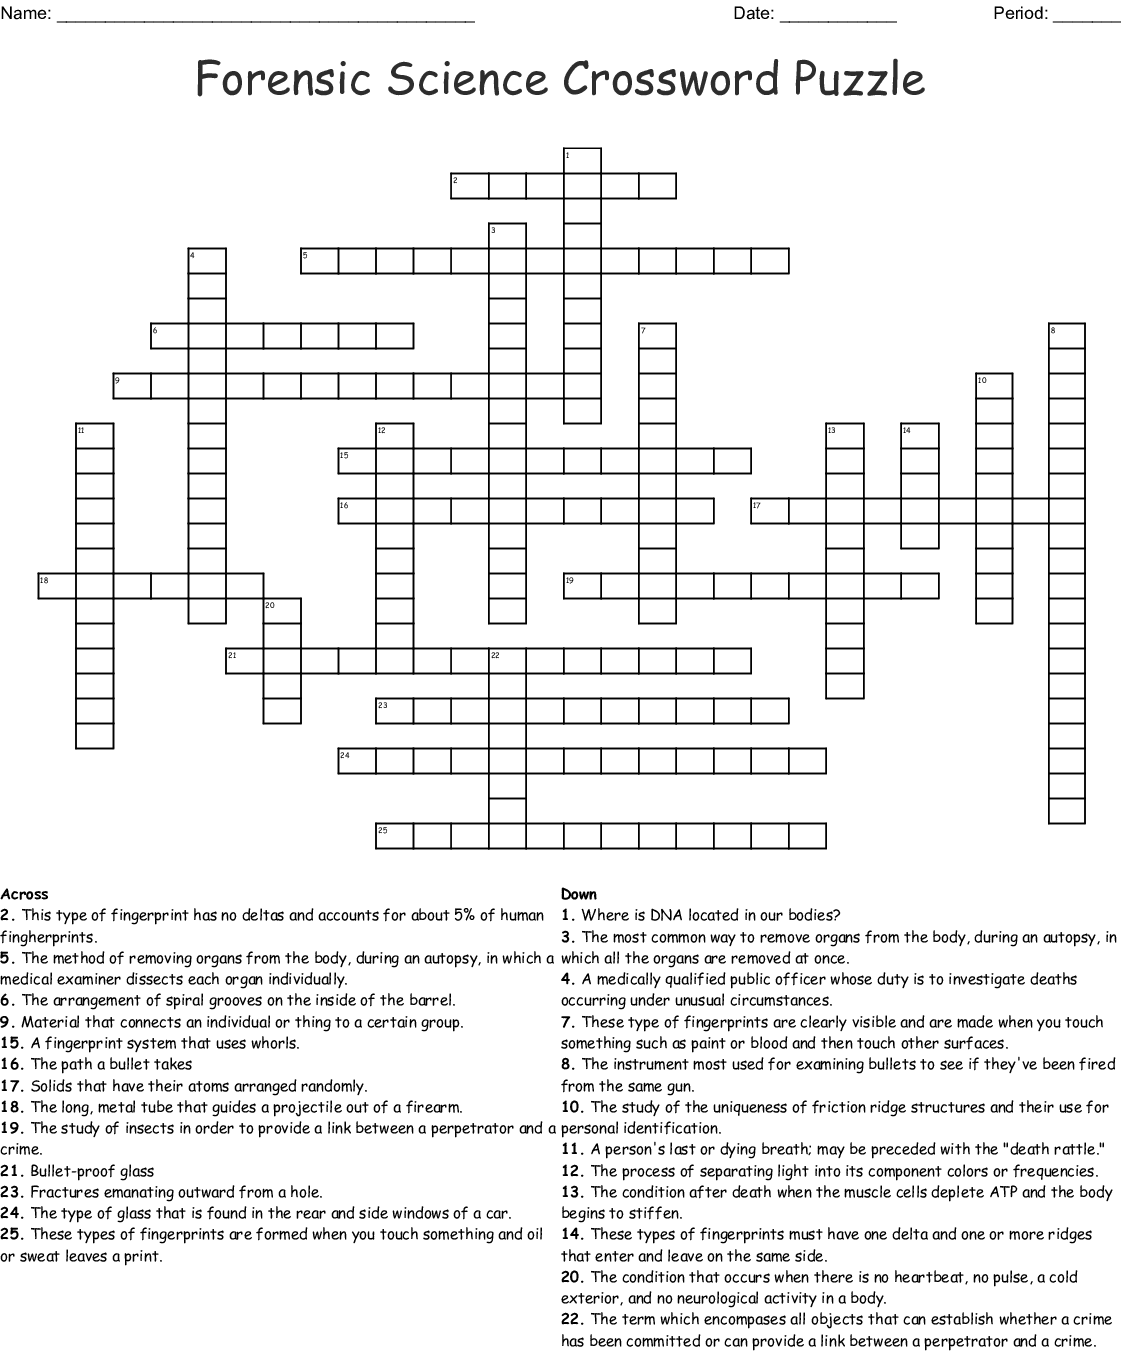 Forensic Science Crossword Puzzle